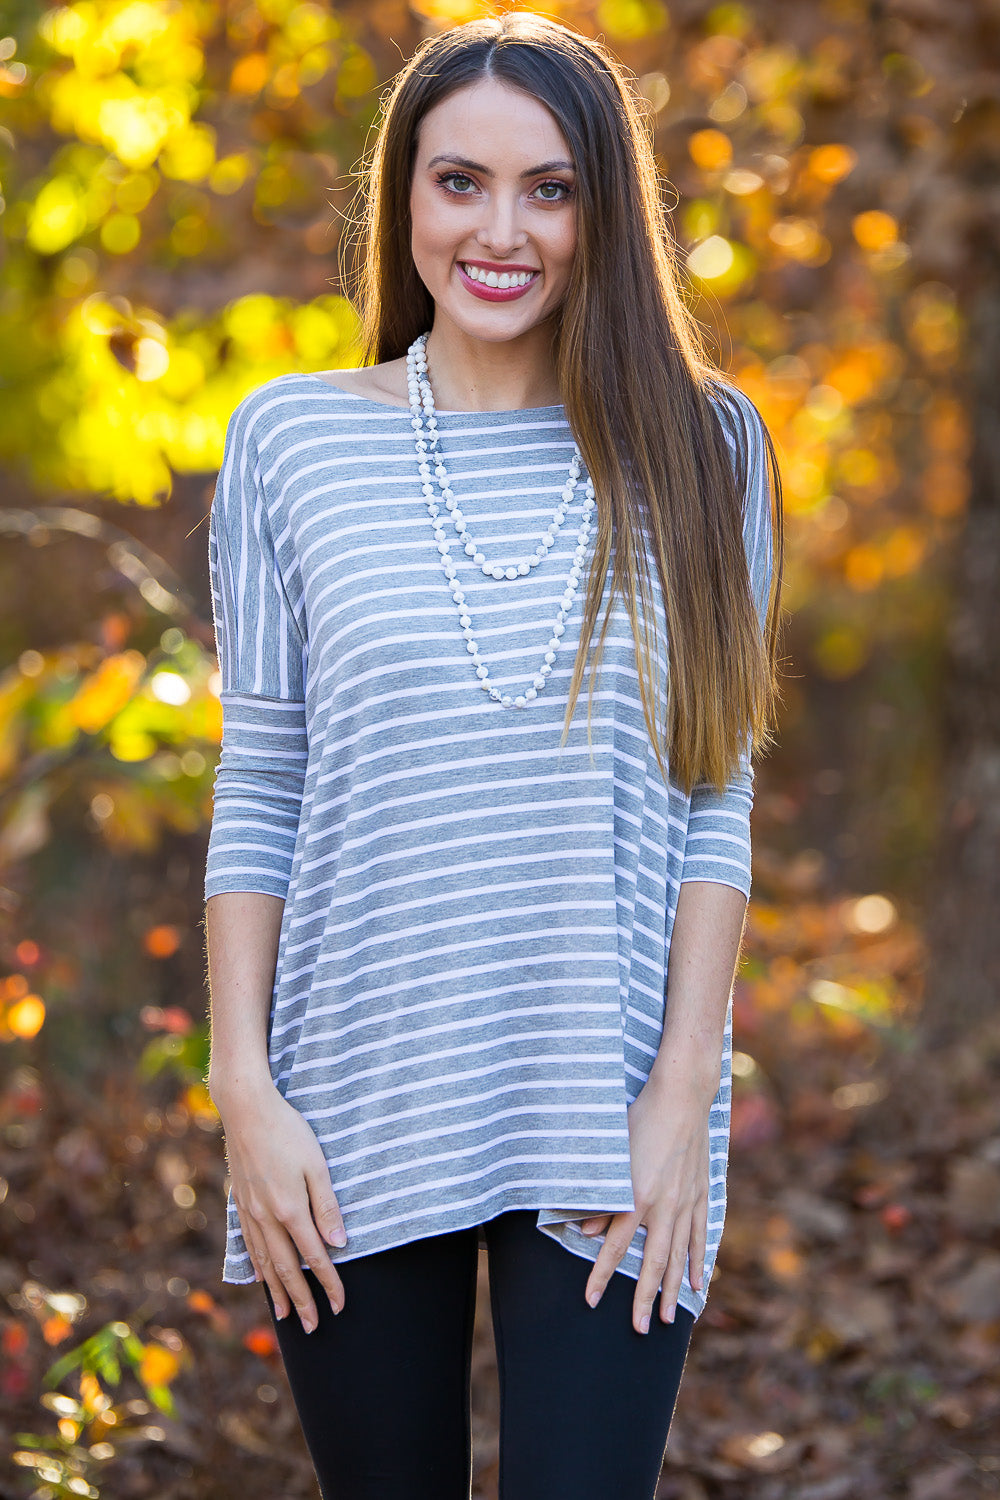 3/4 Sleeve Tiny Striped Piko Top - Heather/White - Piko Clothing